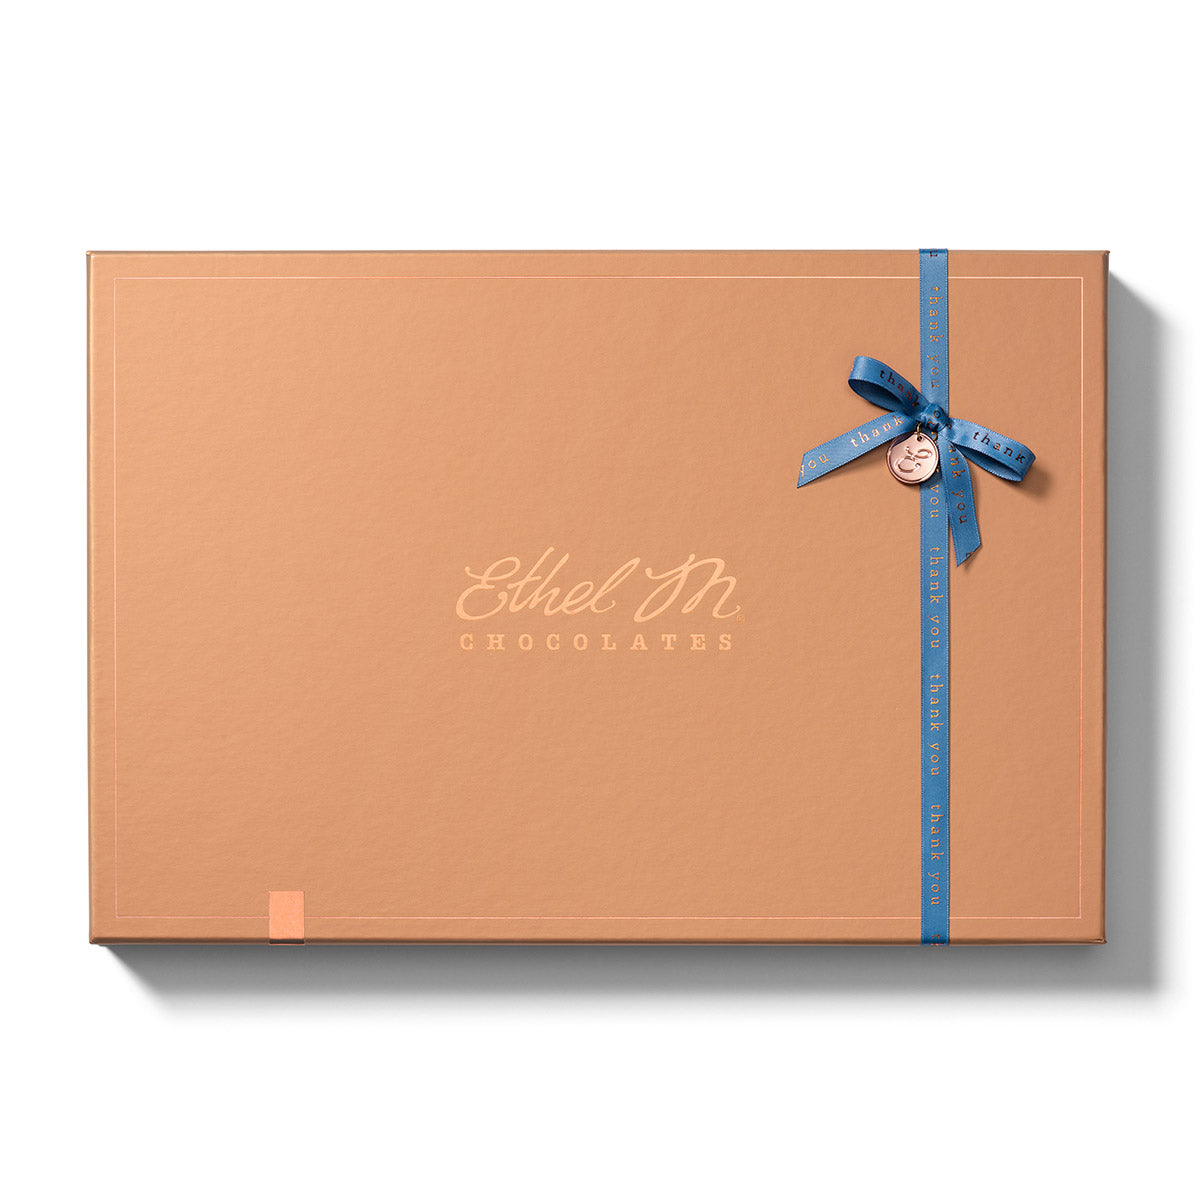 Design your own Chocolate Box with Thank You Ribbon